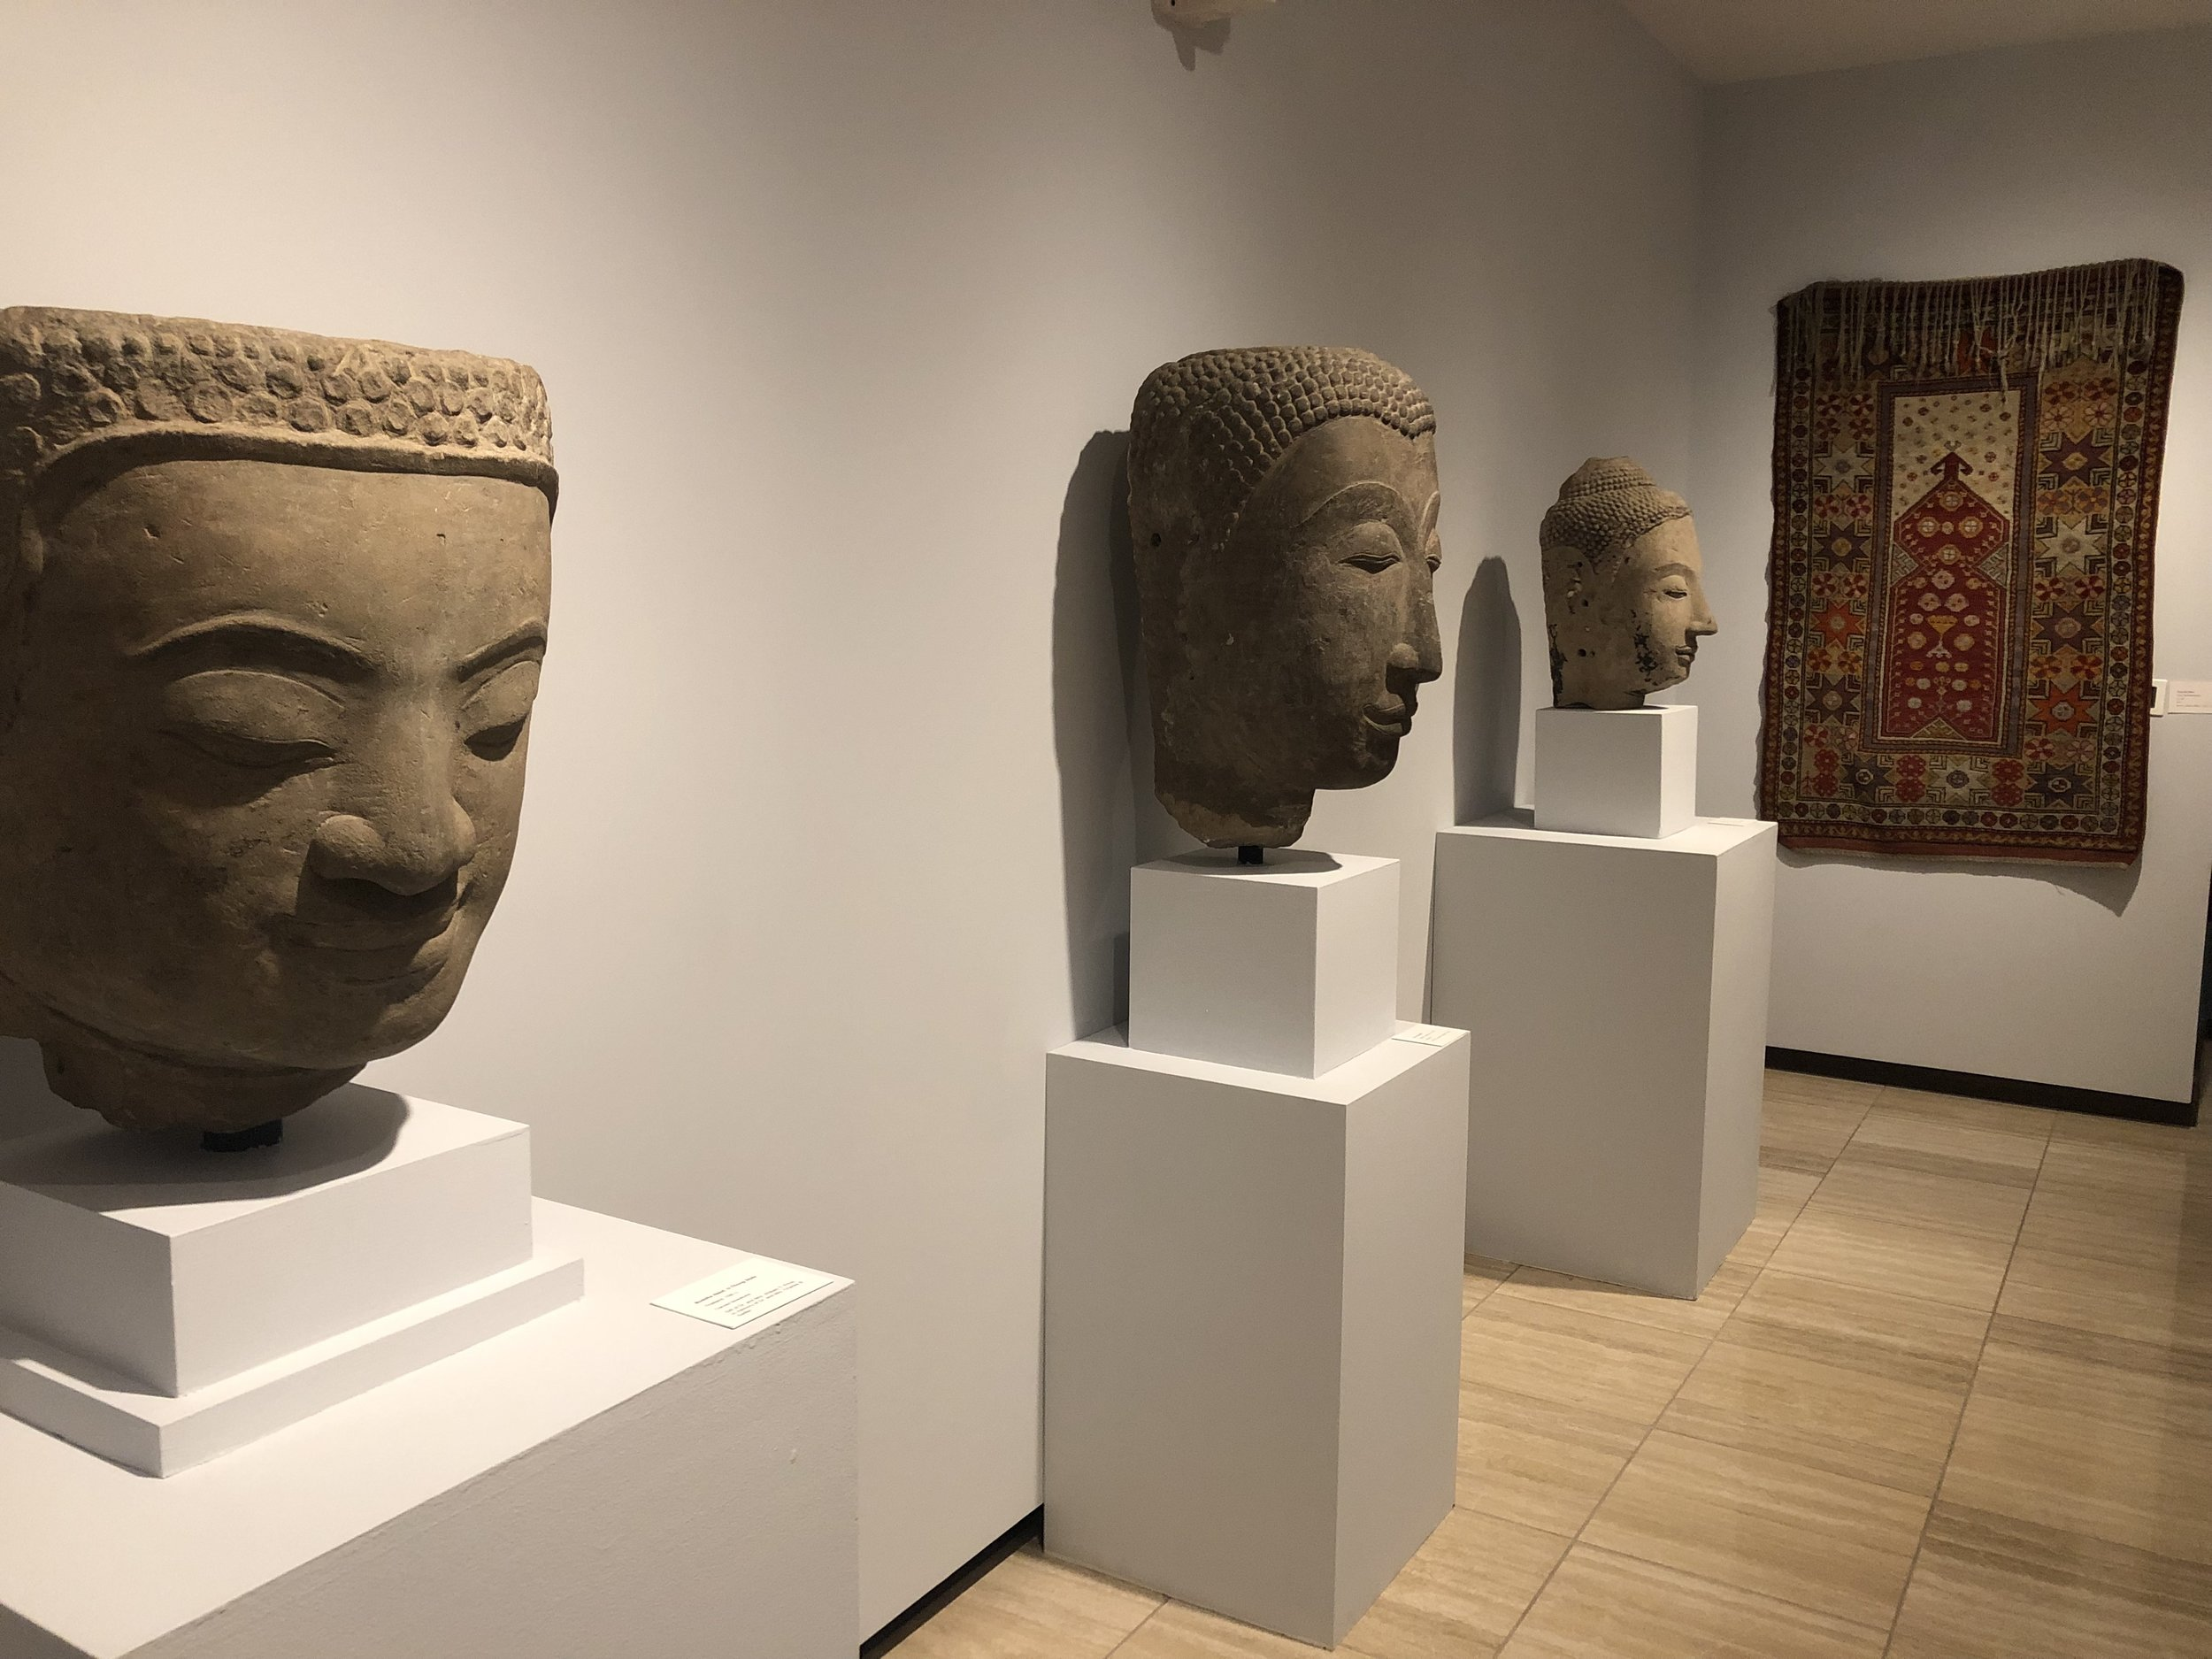 THE COLLECTION OF DR. anD mrs. william t. PRICE - Over 50 Years Collecting Asian Art